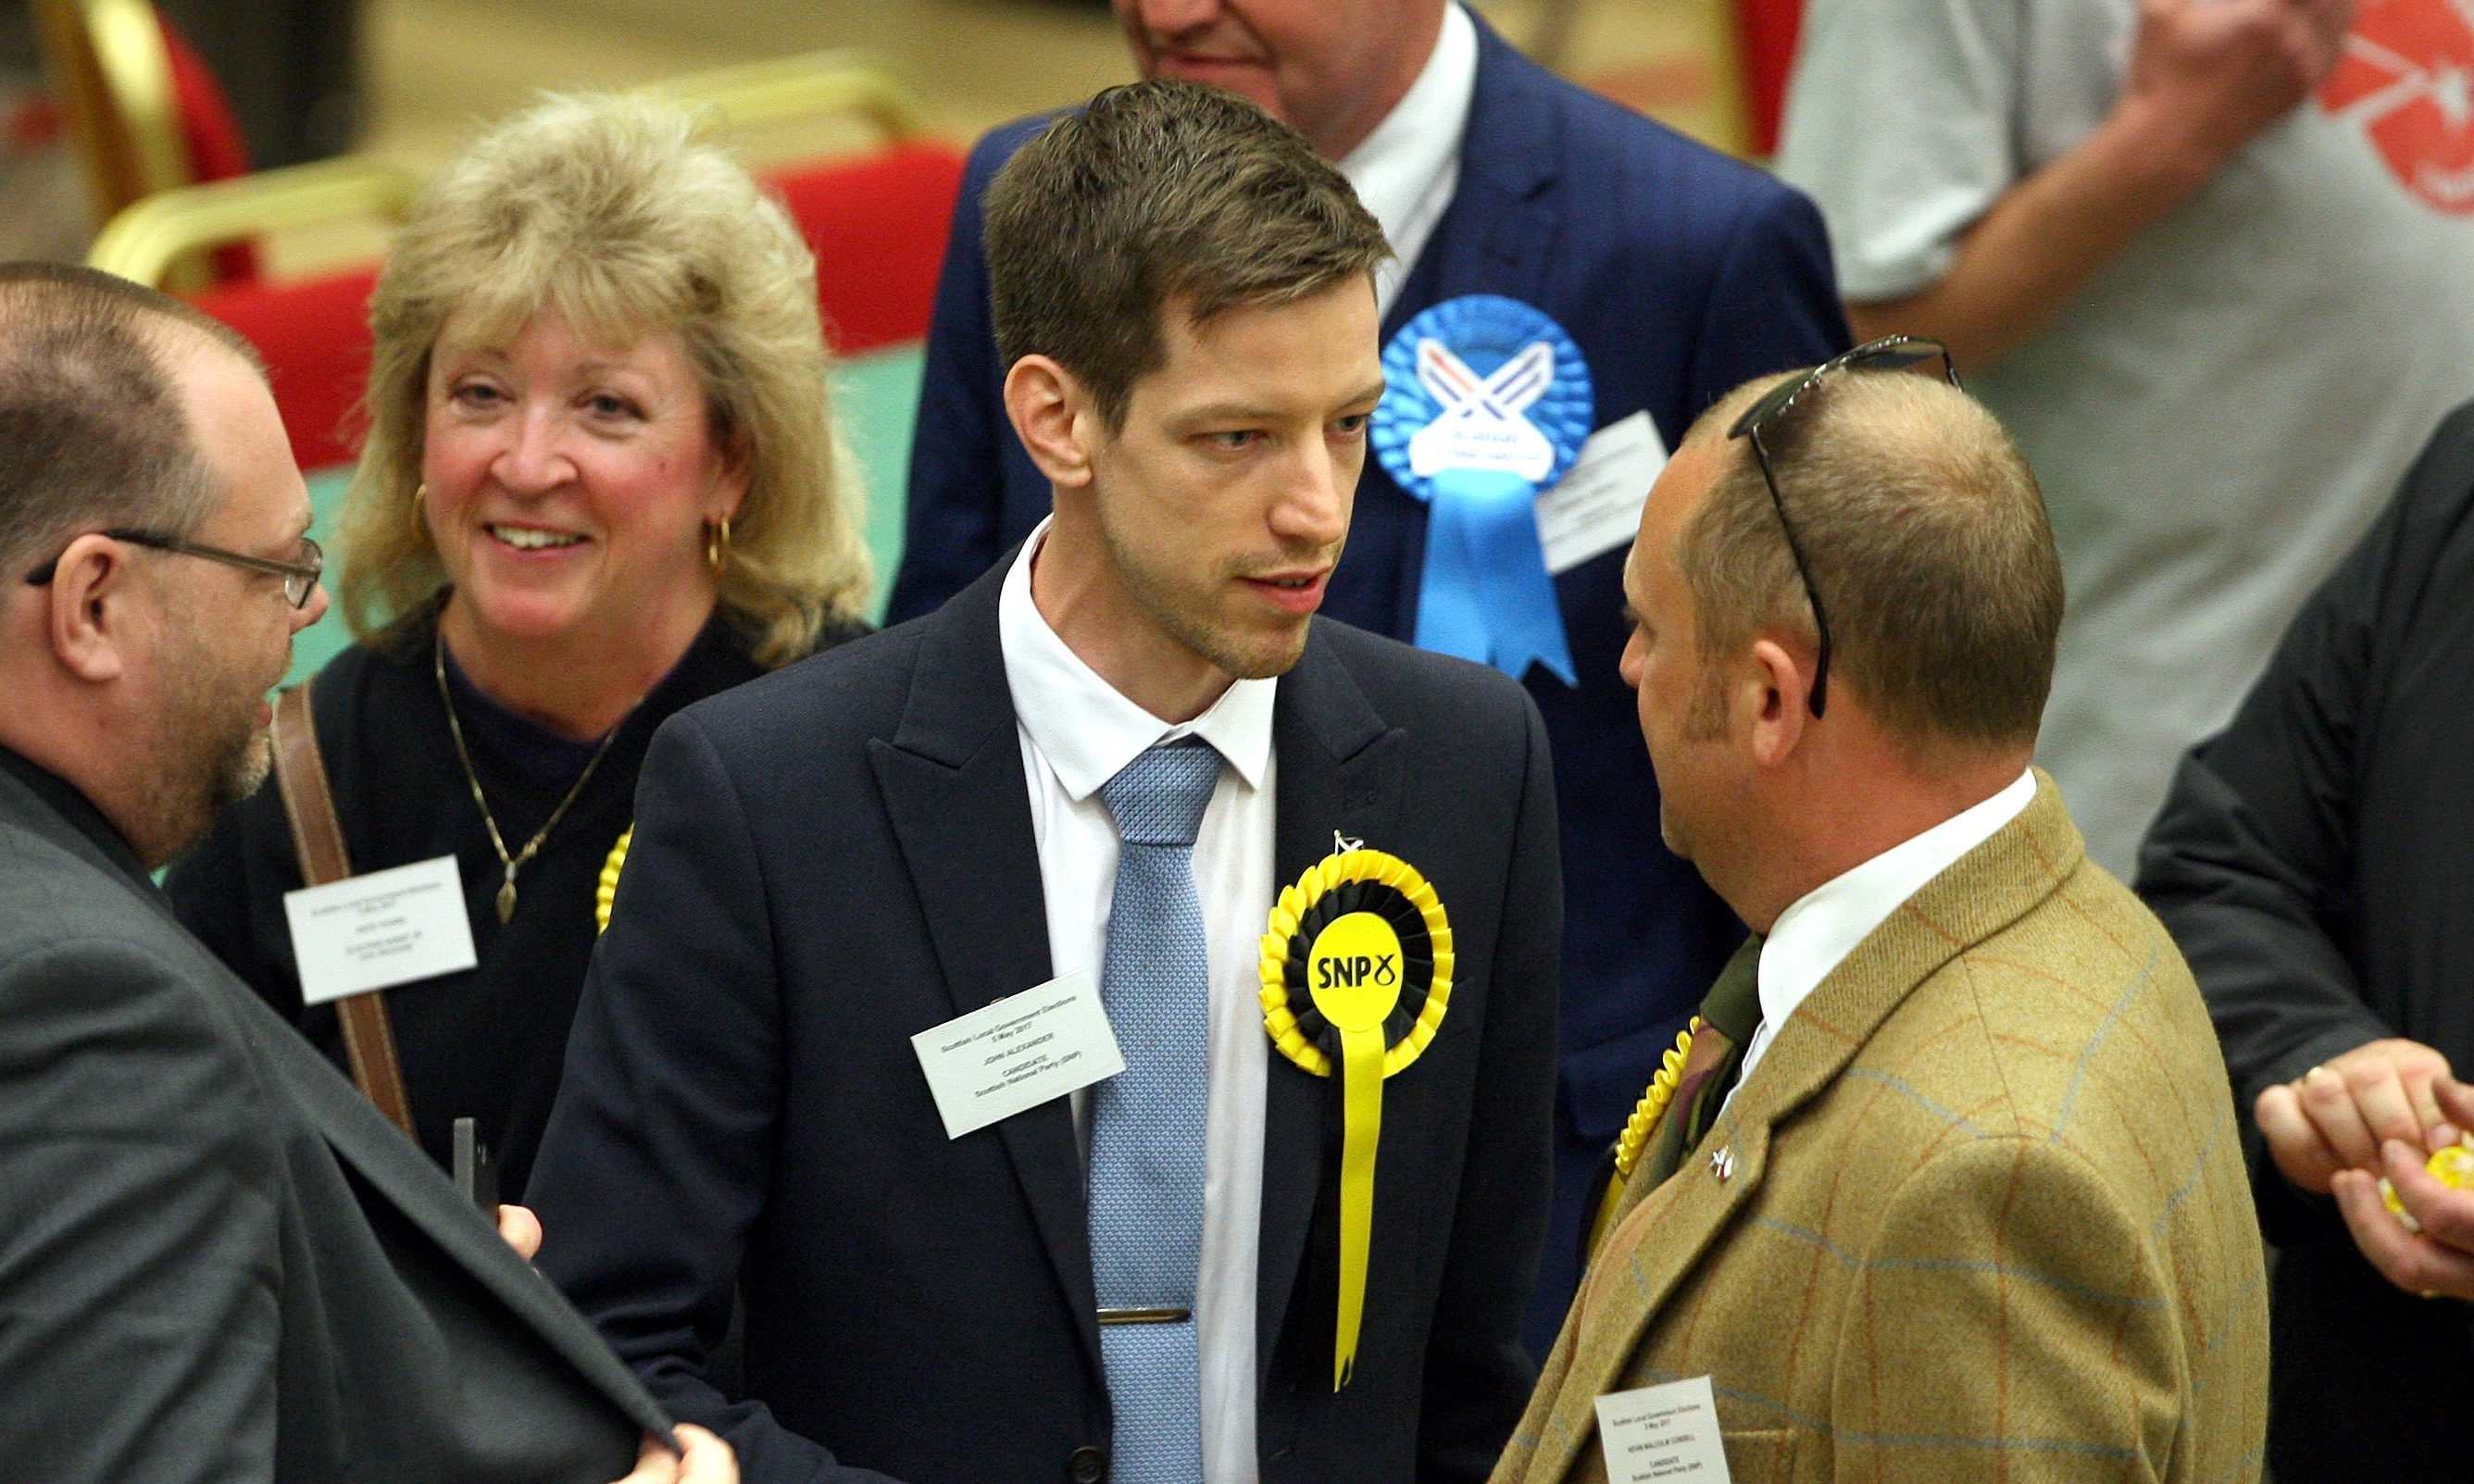 SNP group leader John Alexander at Friday's count in DISC.